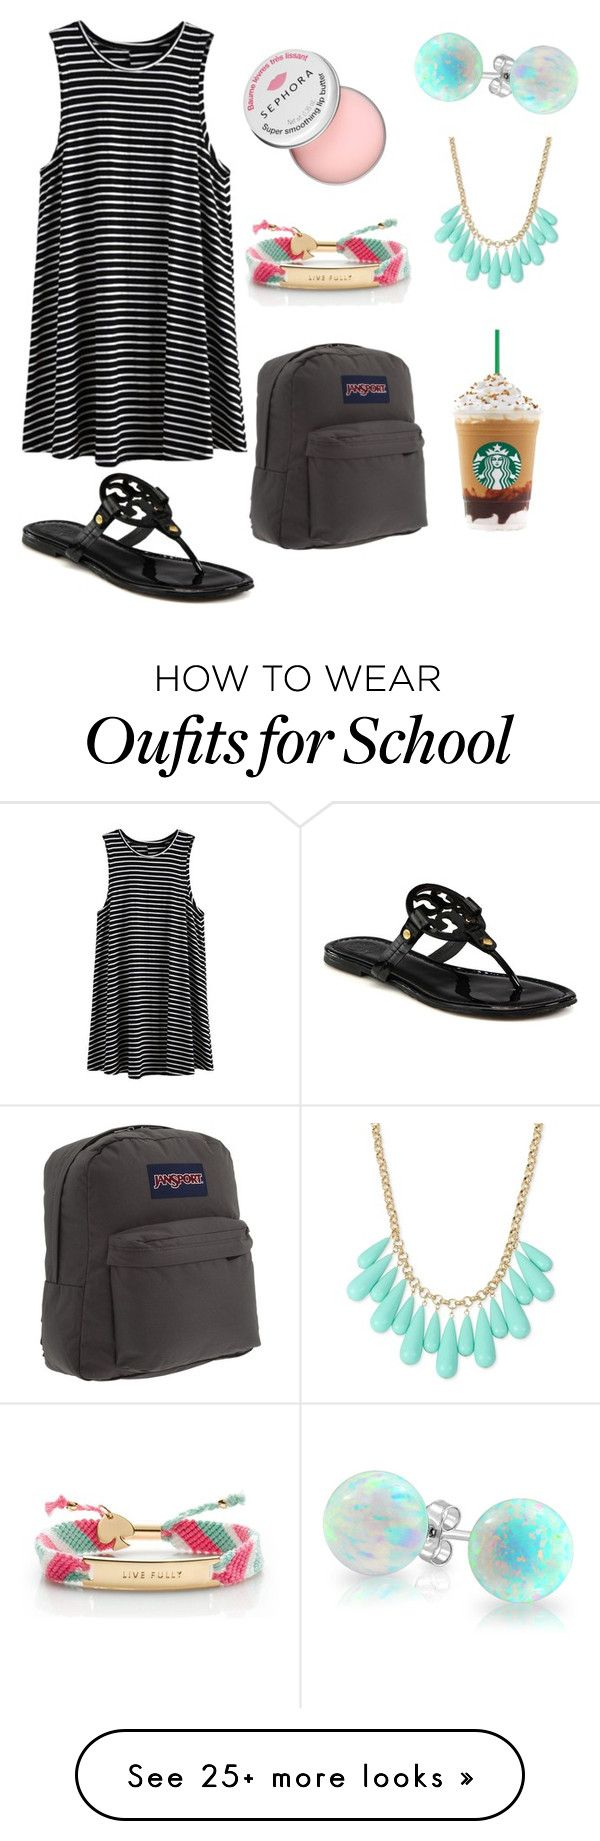 """""""Preppy School Outfit"""" by caroflagrl on Polyvore featuring Sephora Collection, Kate Spade, JanSport, INC International Concepts, Bling Jewelry and Tory Burch"""